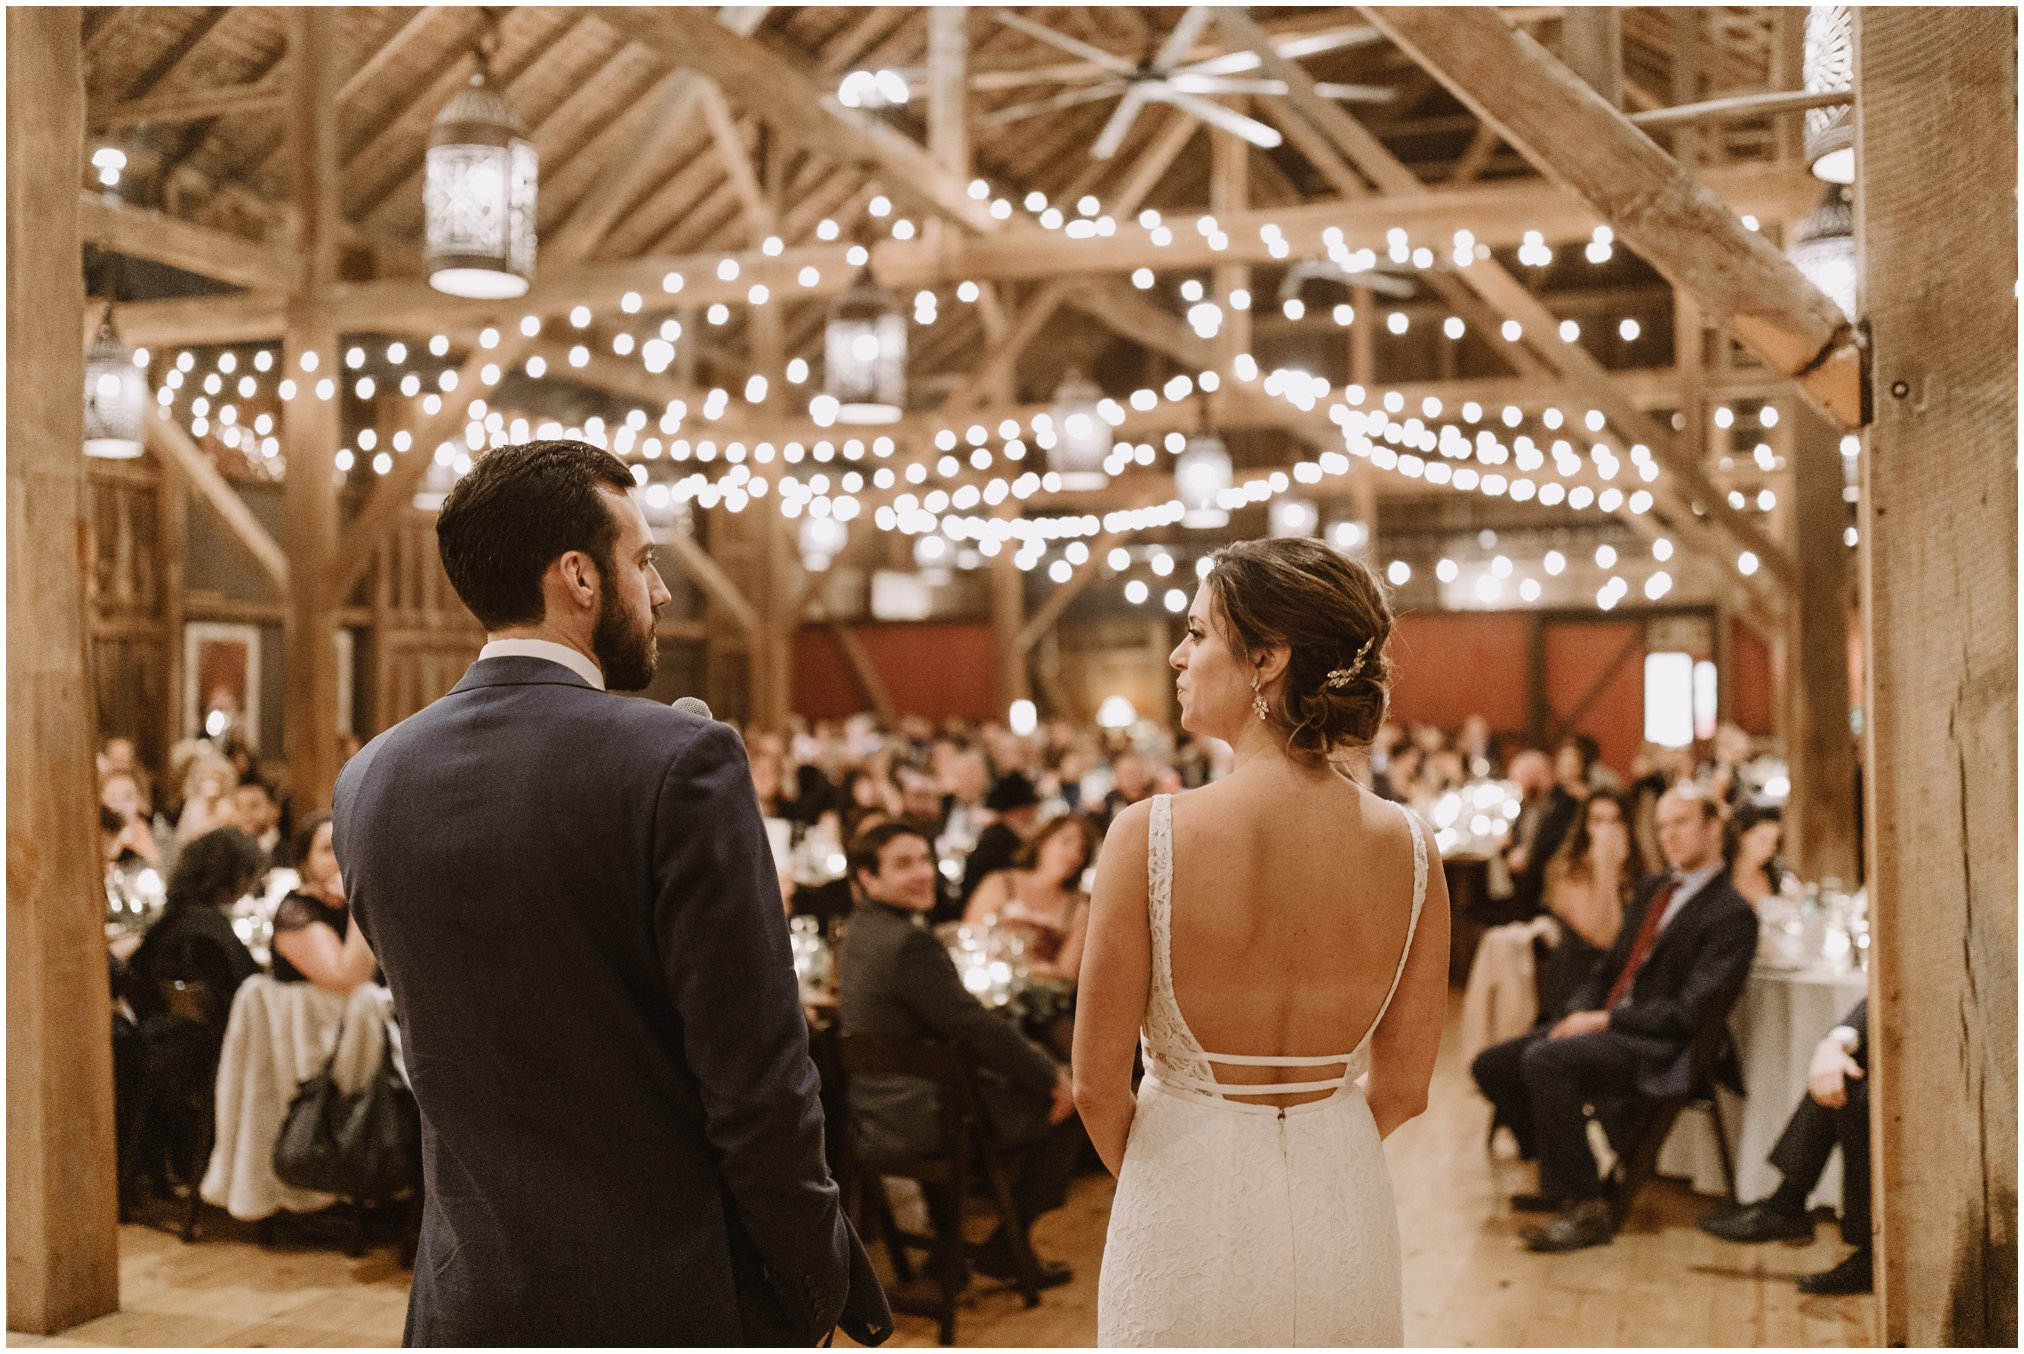 Bride and groom first dance in barn with string lights at Riverside on the Potomac